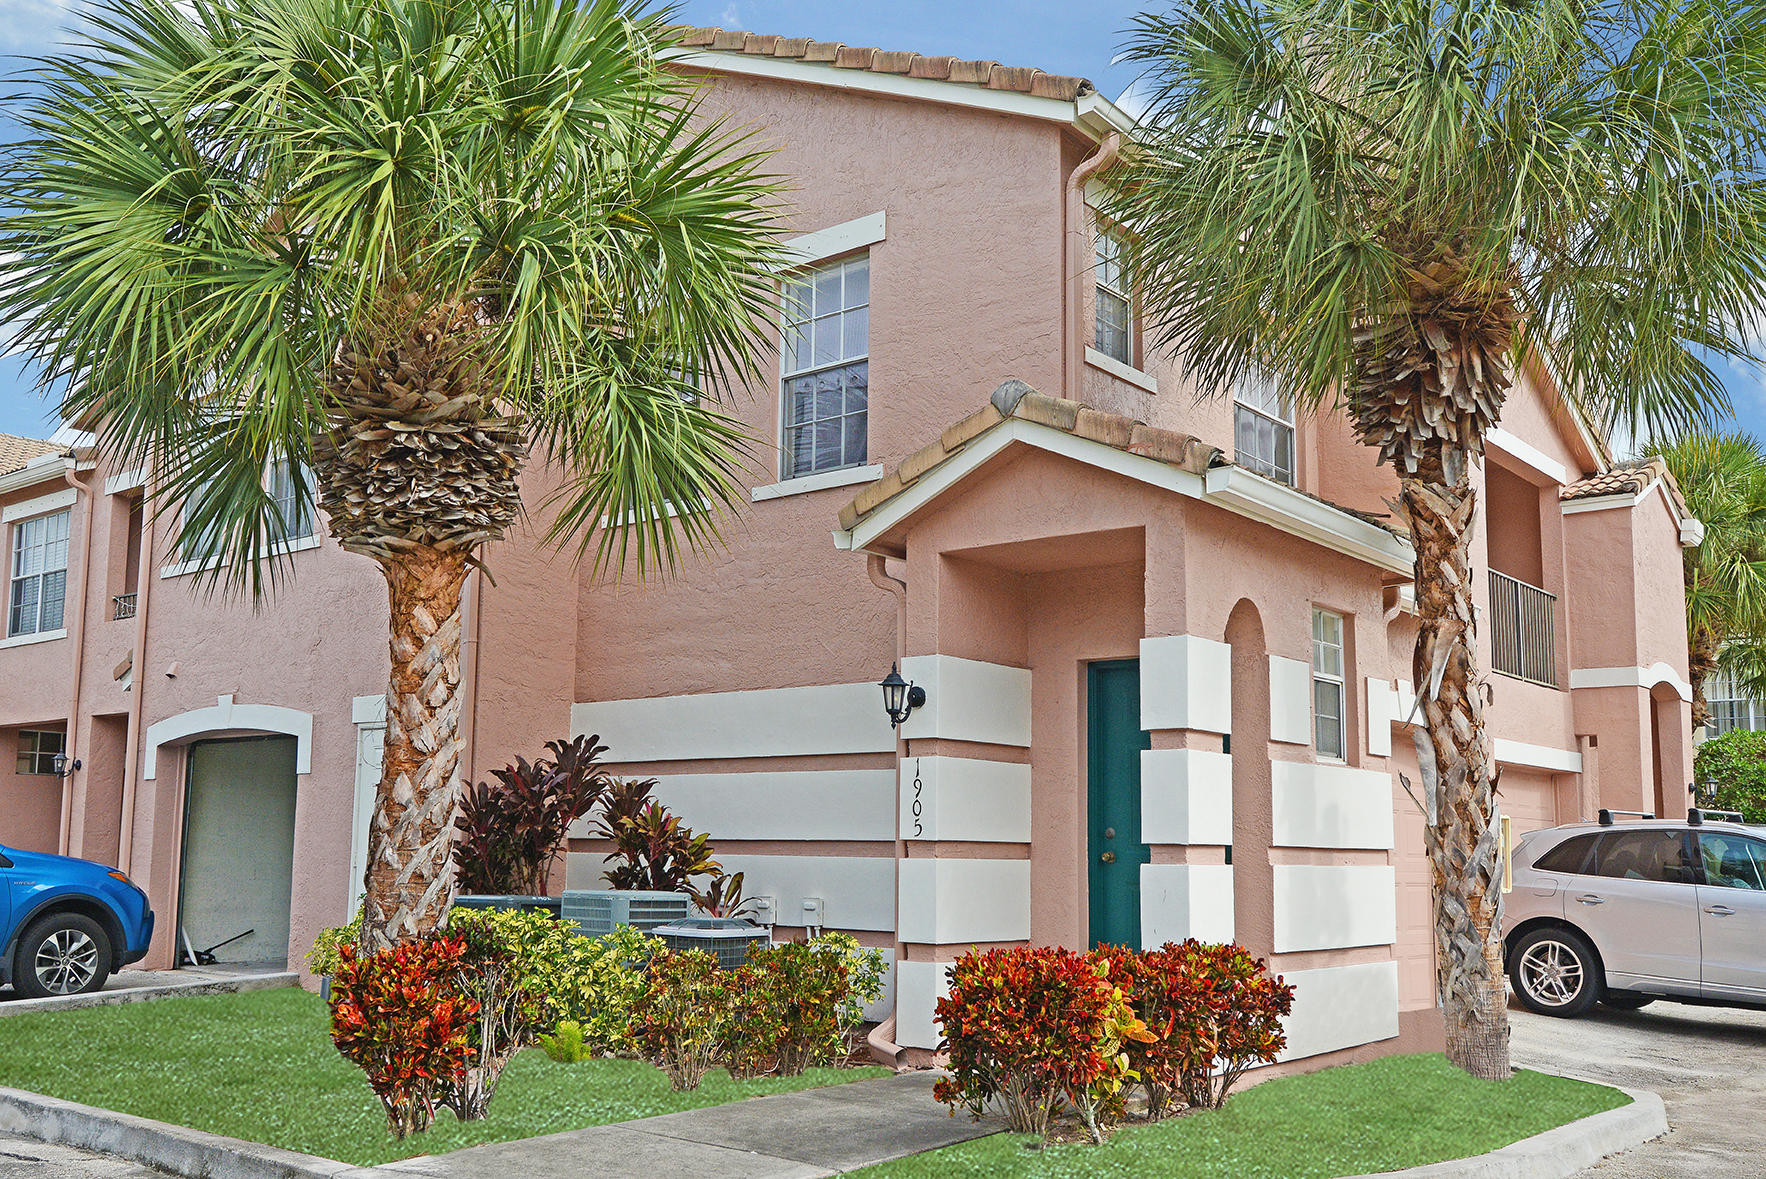 Great location in Boynton Beach, open floor plan with a split bedroom plan, large one car garage with a lot of storage, spacious laundry room.  Community pool and club house, tot lot, valet trash pick up.  INVESTOR FRIENDLY COMMUNITY, LEASE RIGHT AWAY.